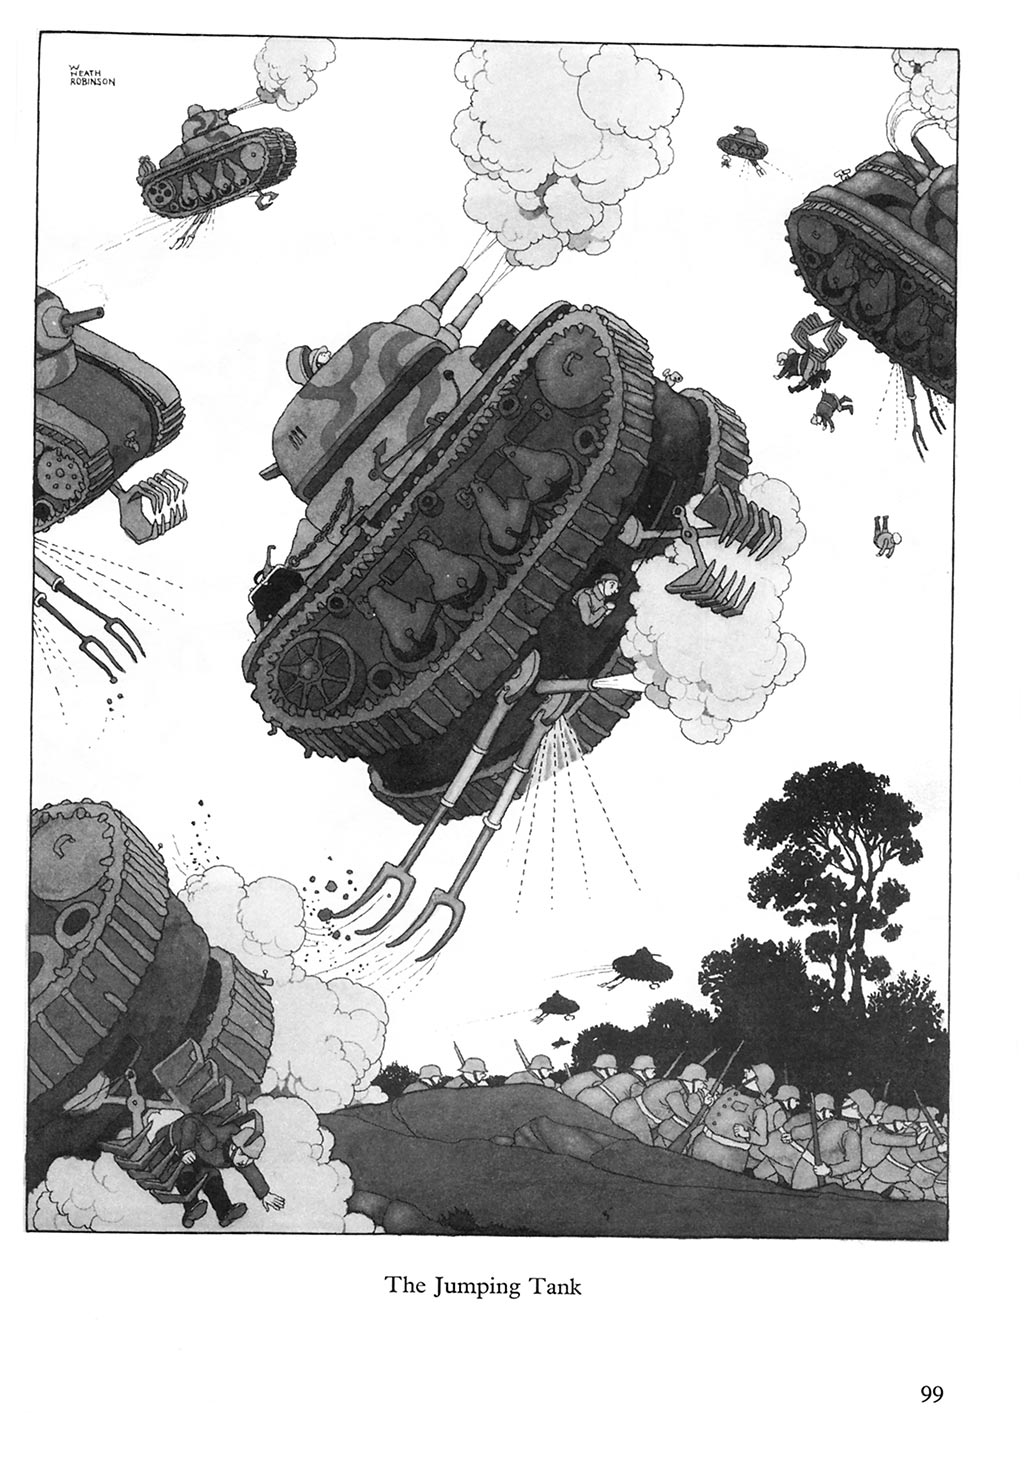 william_heath_robinson_inventions_-_page_099